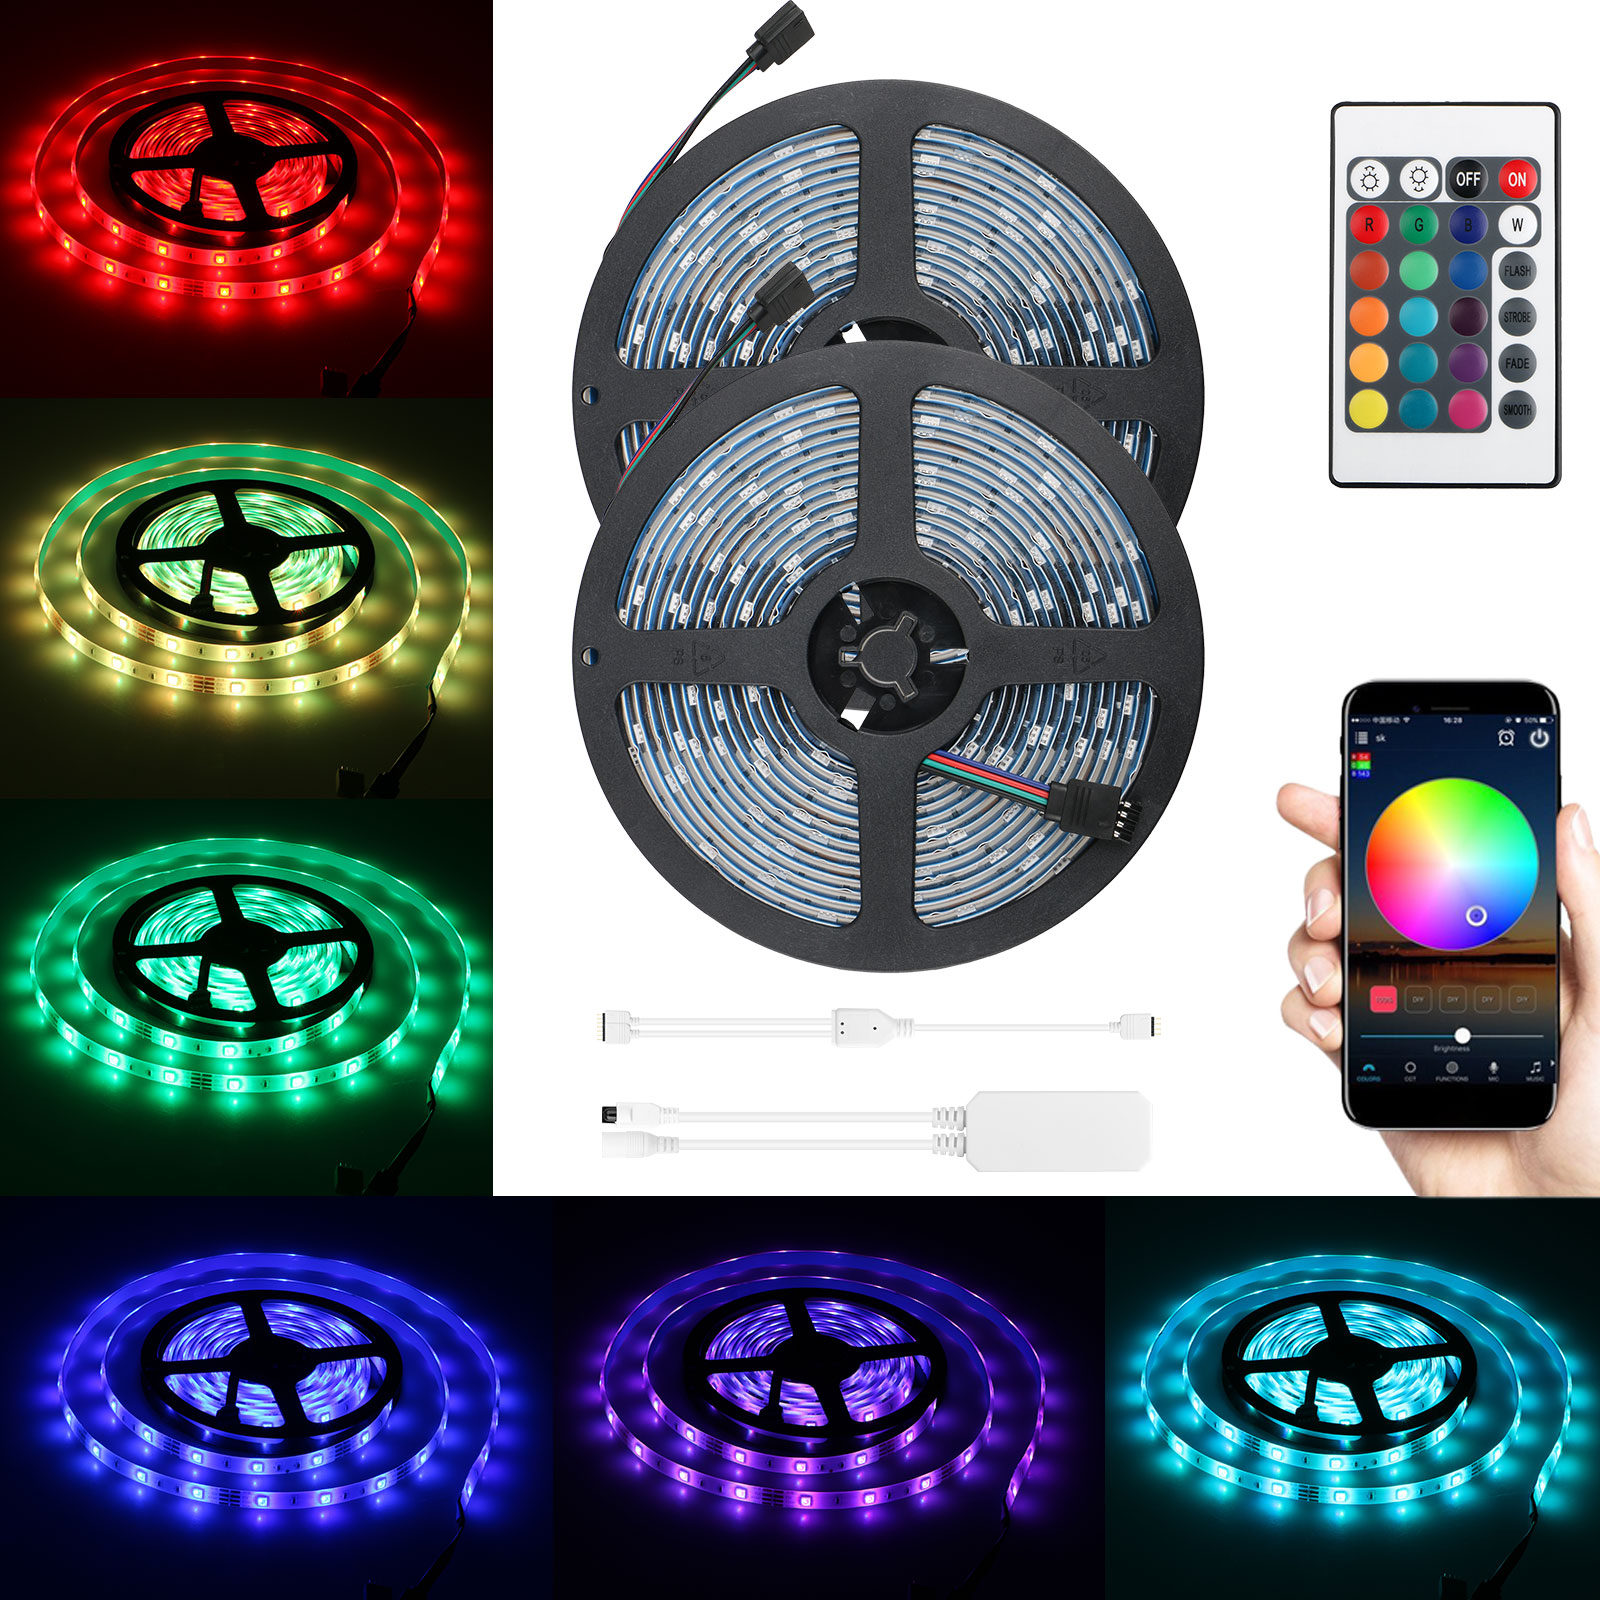 2-pack RGB LED Light Strip, 32.8ft Waterproof Smart WiFi Controller Strip Light Kit 5050 SMD LED Lights Working with Android and iOS System